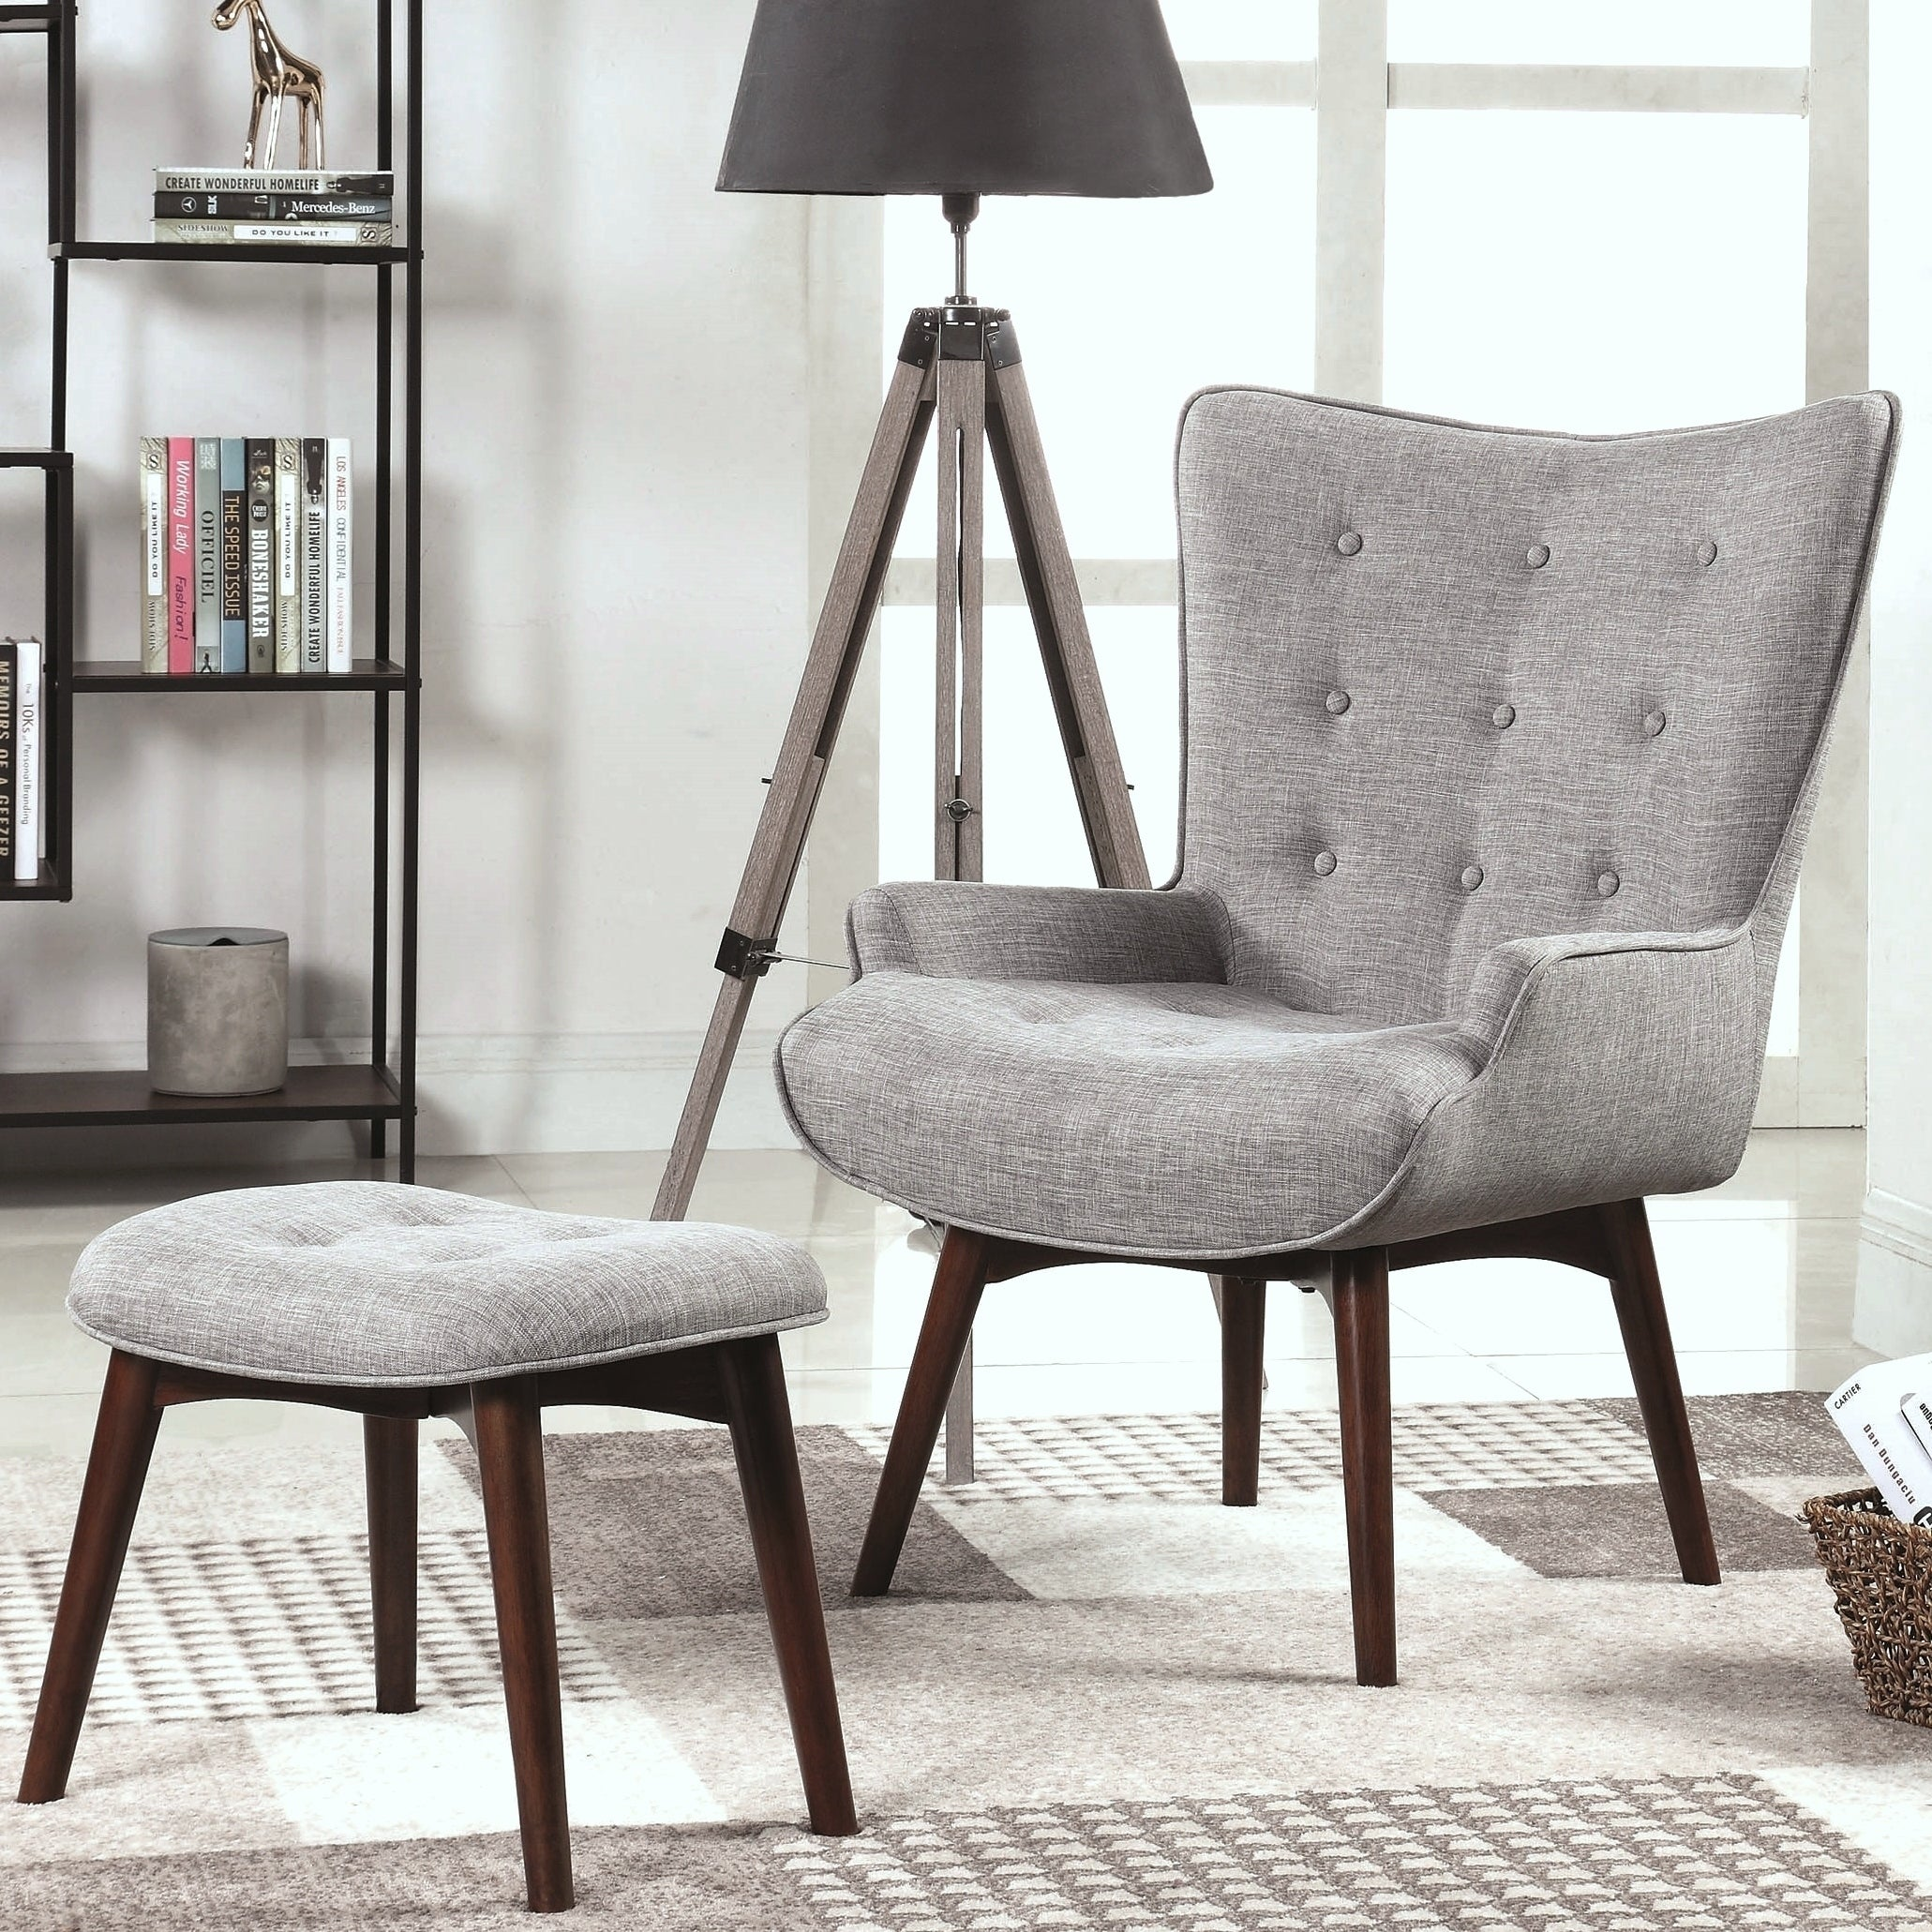 Mid-Century Modern Design Living Room Accent Chair with Matching Ottoman -  3-Chair, 3-Ottoman